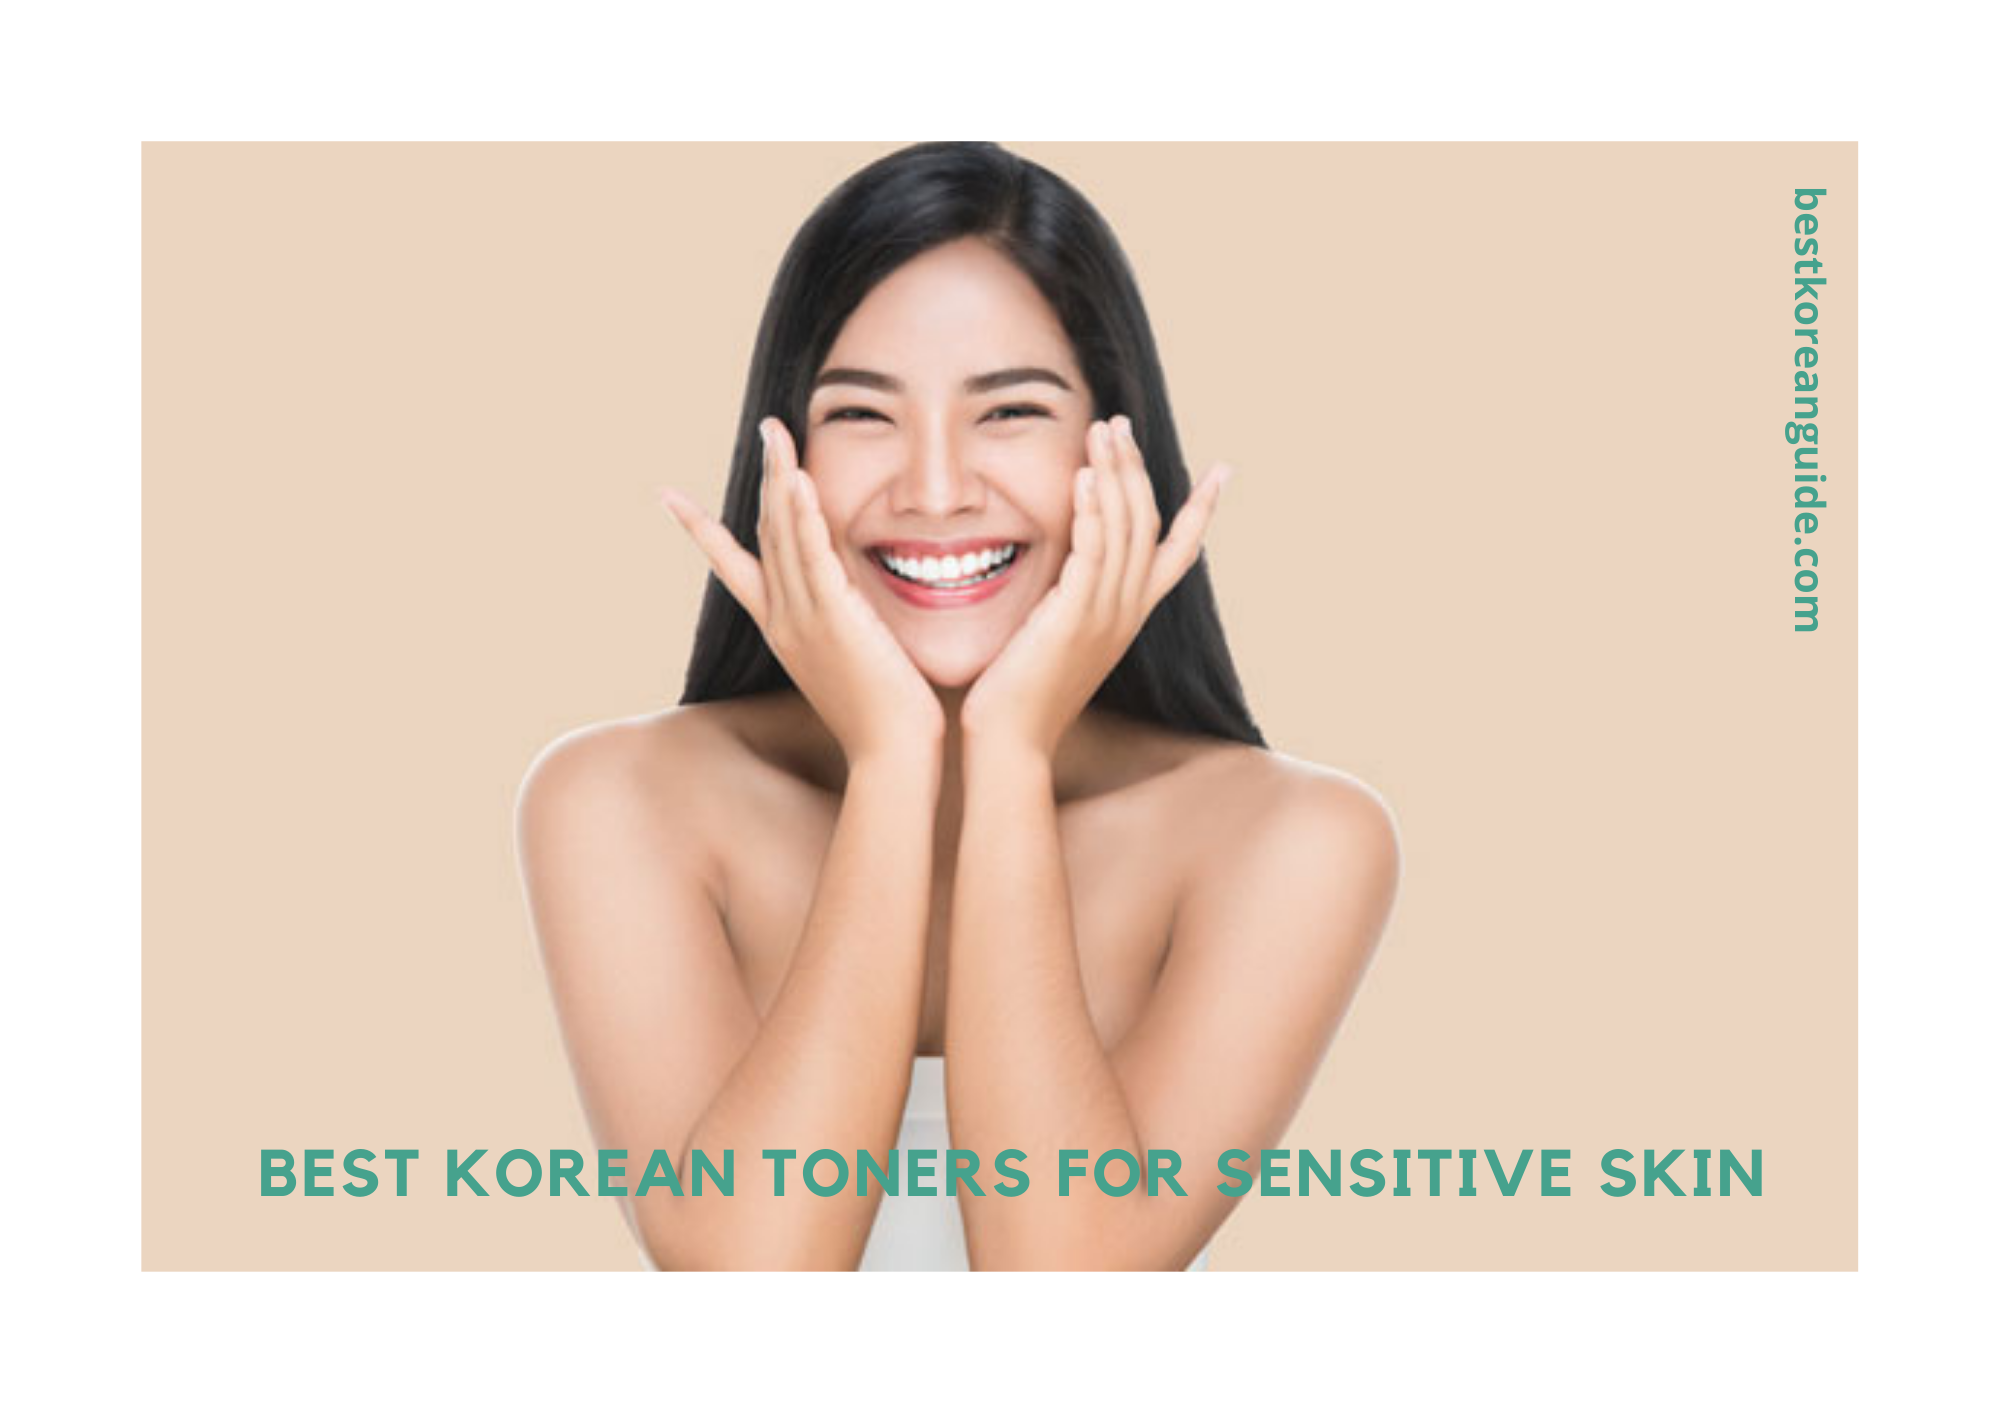 Best Korean Toners for sensitive skin